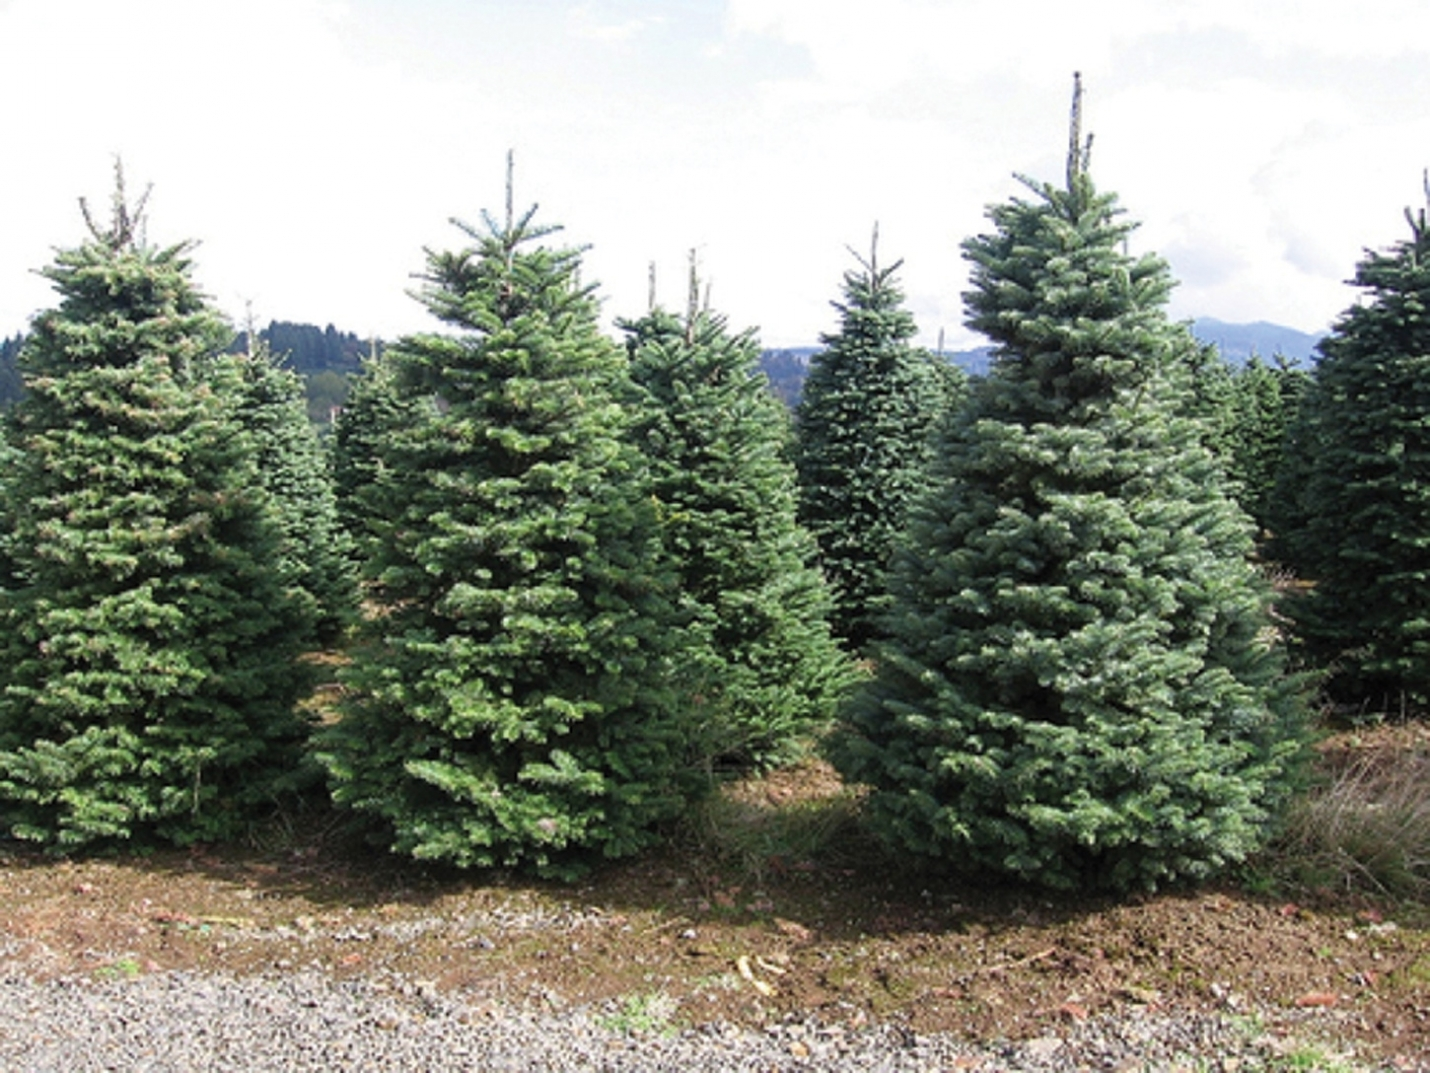 County Offering Christmas Tree Recycling Starting Dec. 26th